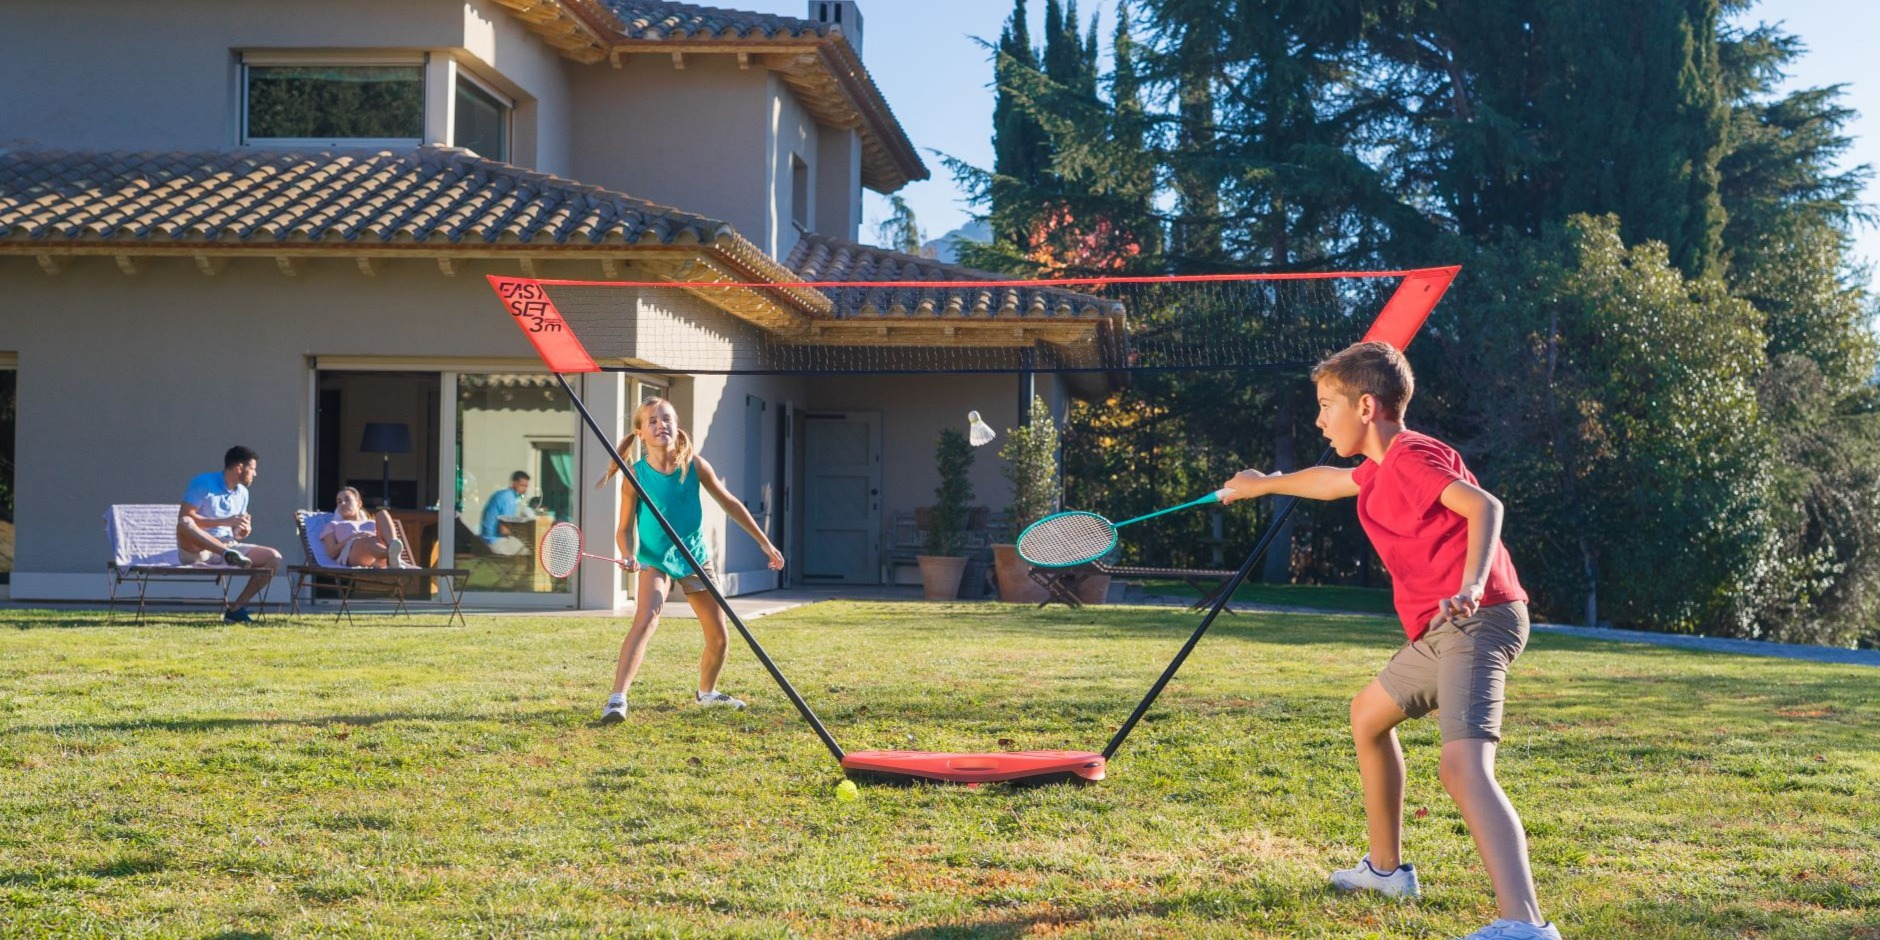 How To Make The Most Of Your Outdoor Badminton Experience?